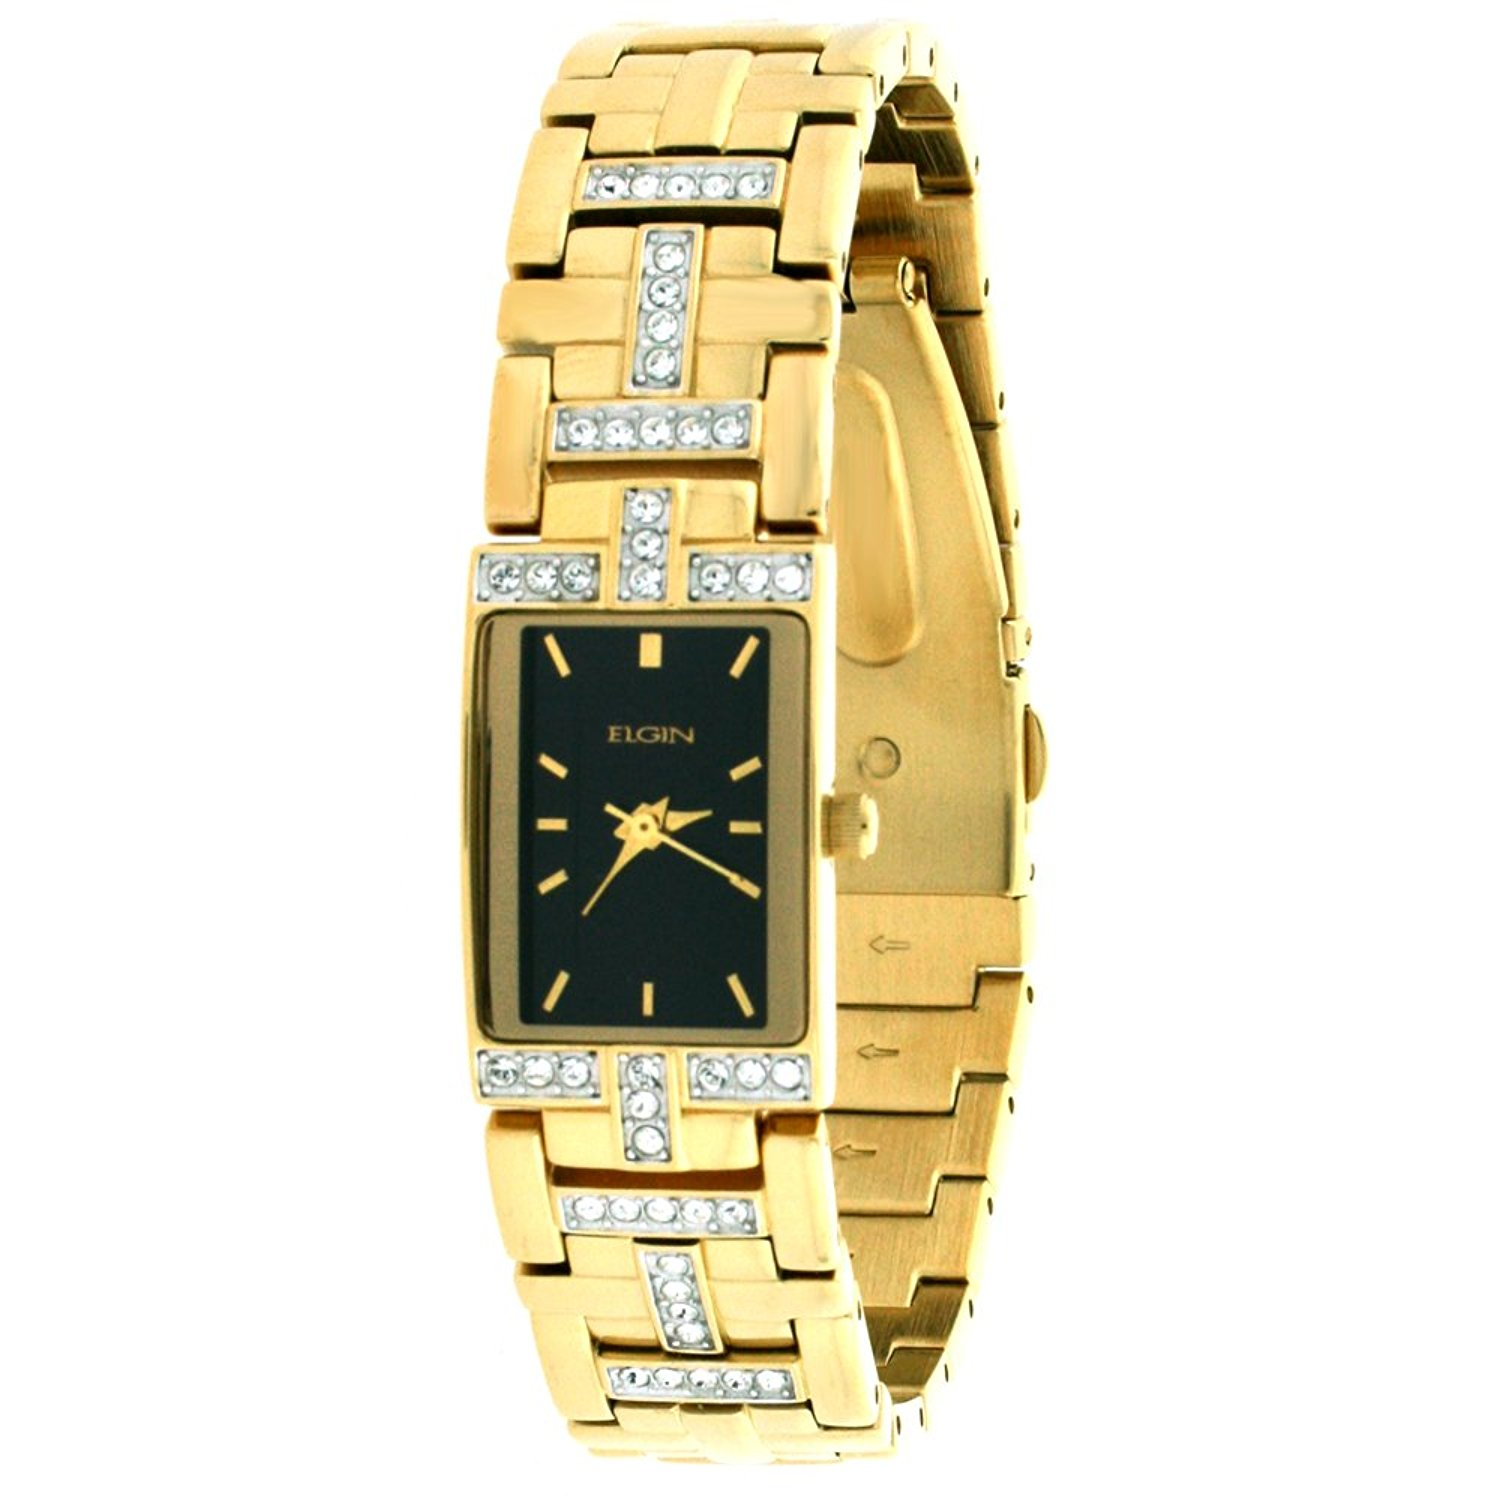 ELGIN Ladies Crystal Gold Tone Dress Watch EG1504